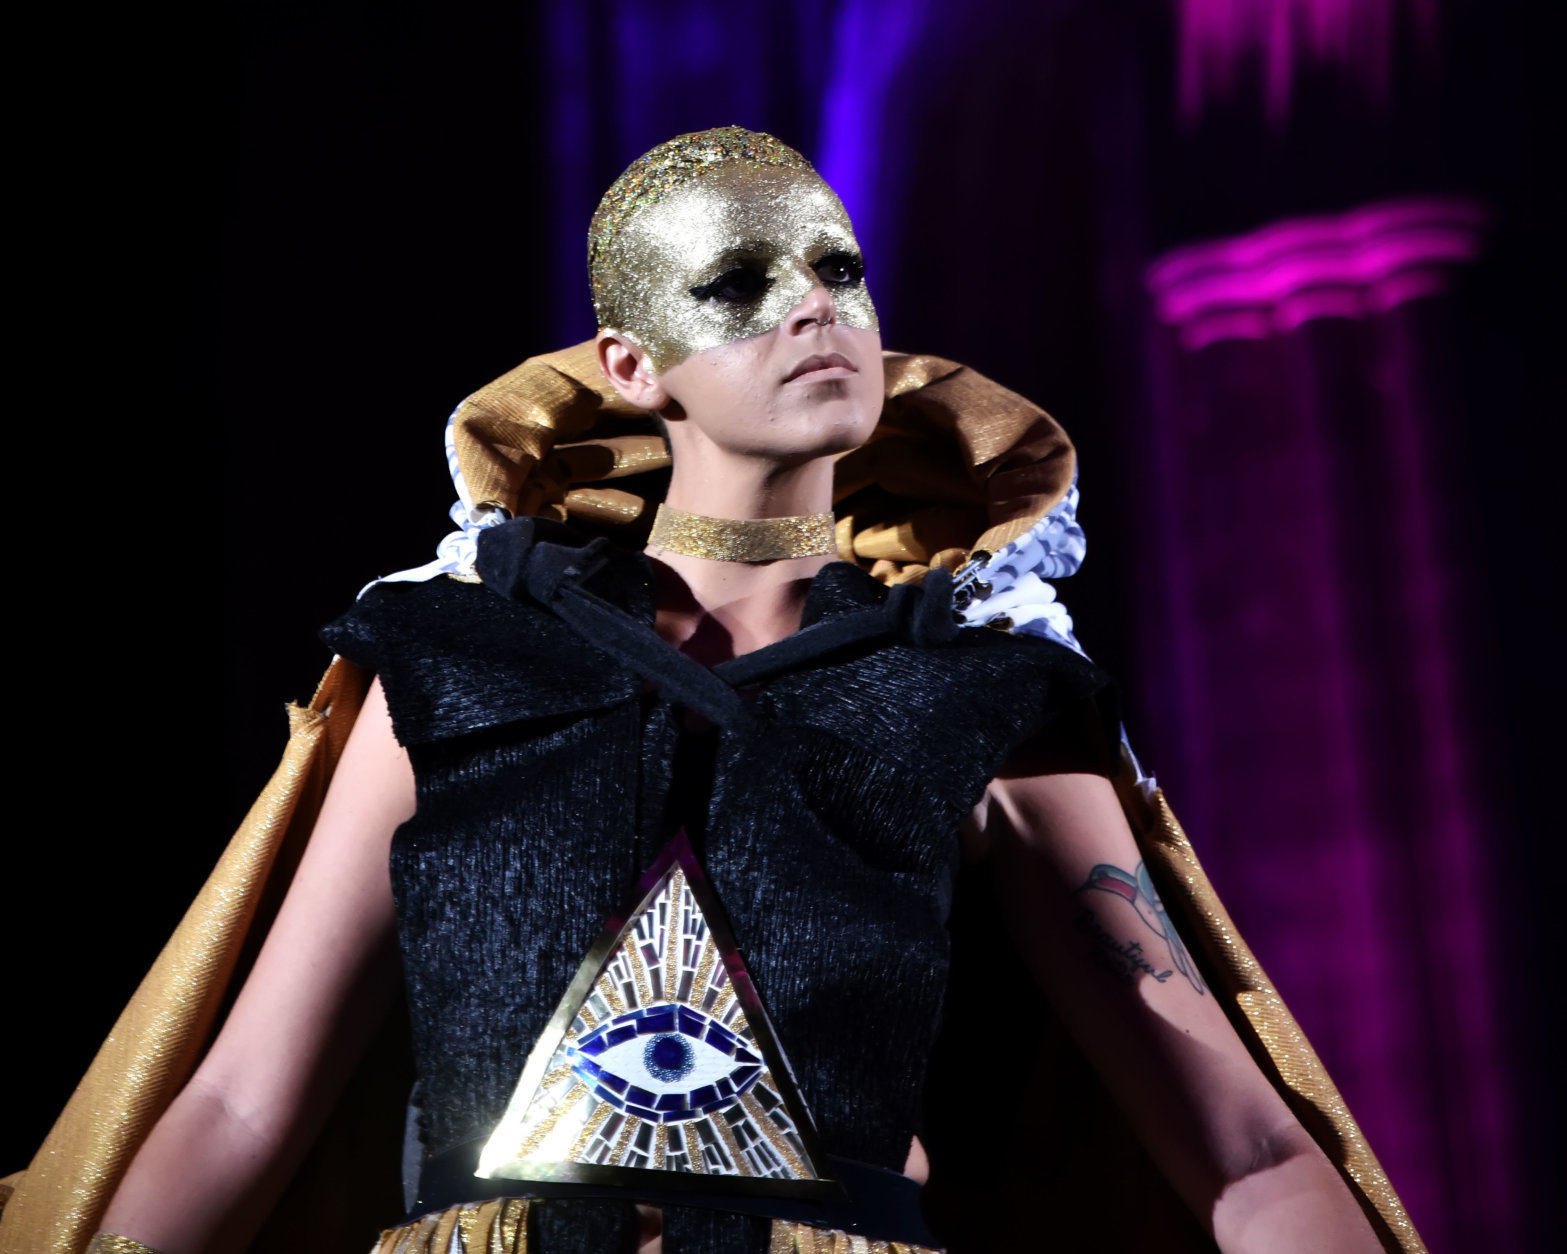 """A model wears a garment constructed out of materials used in the built interior environment during the International Interior Design Association Mid-Atlantic Chapter (IIDA-MAC) Annual Cosmo Couture Fashion Show at the Washington National Cathedral on Thursday, September 20, 2018. (Courtesy Shannon Finney/<a href=""""https://www.shannonfinneyphotography.com/index"""" target=""""_blank"""" rel=""""noopener noreferrer"""">shannonfinneyphotography.com</a>)"""